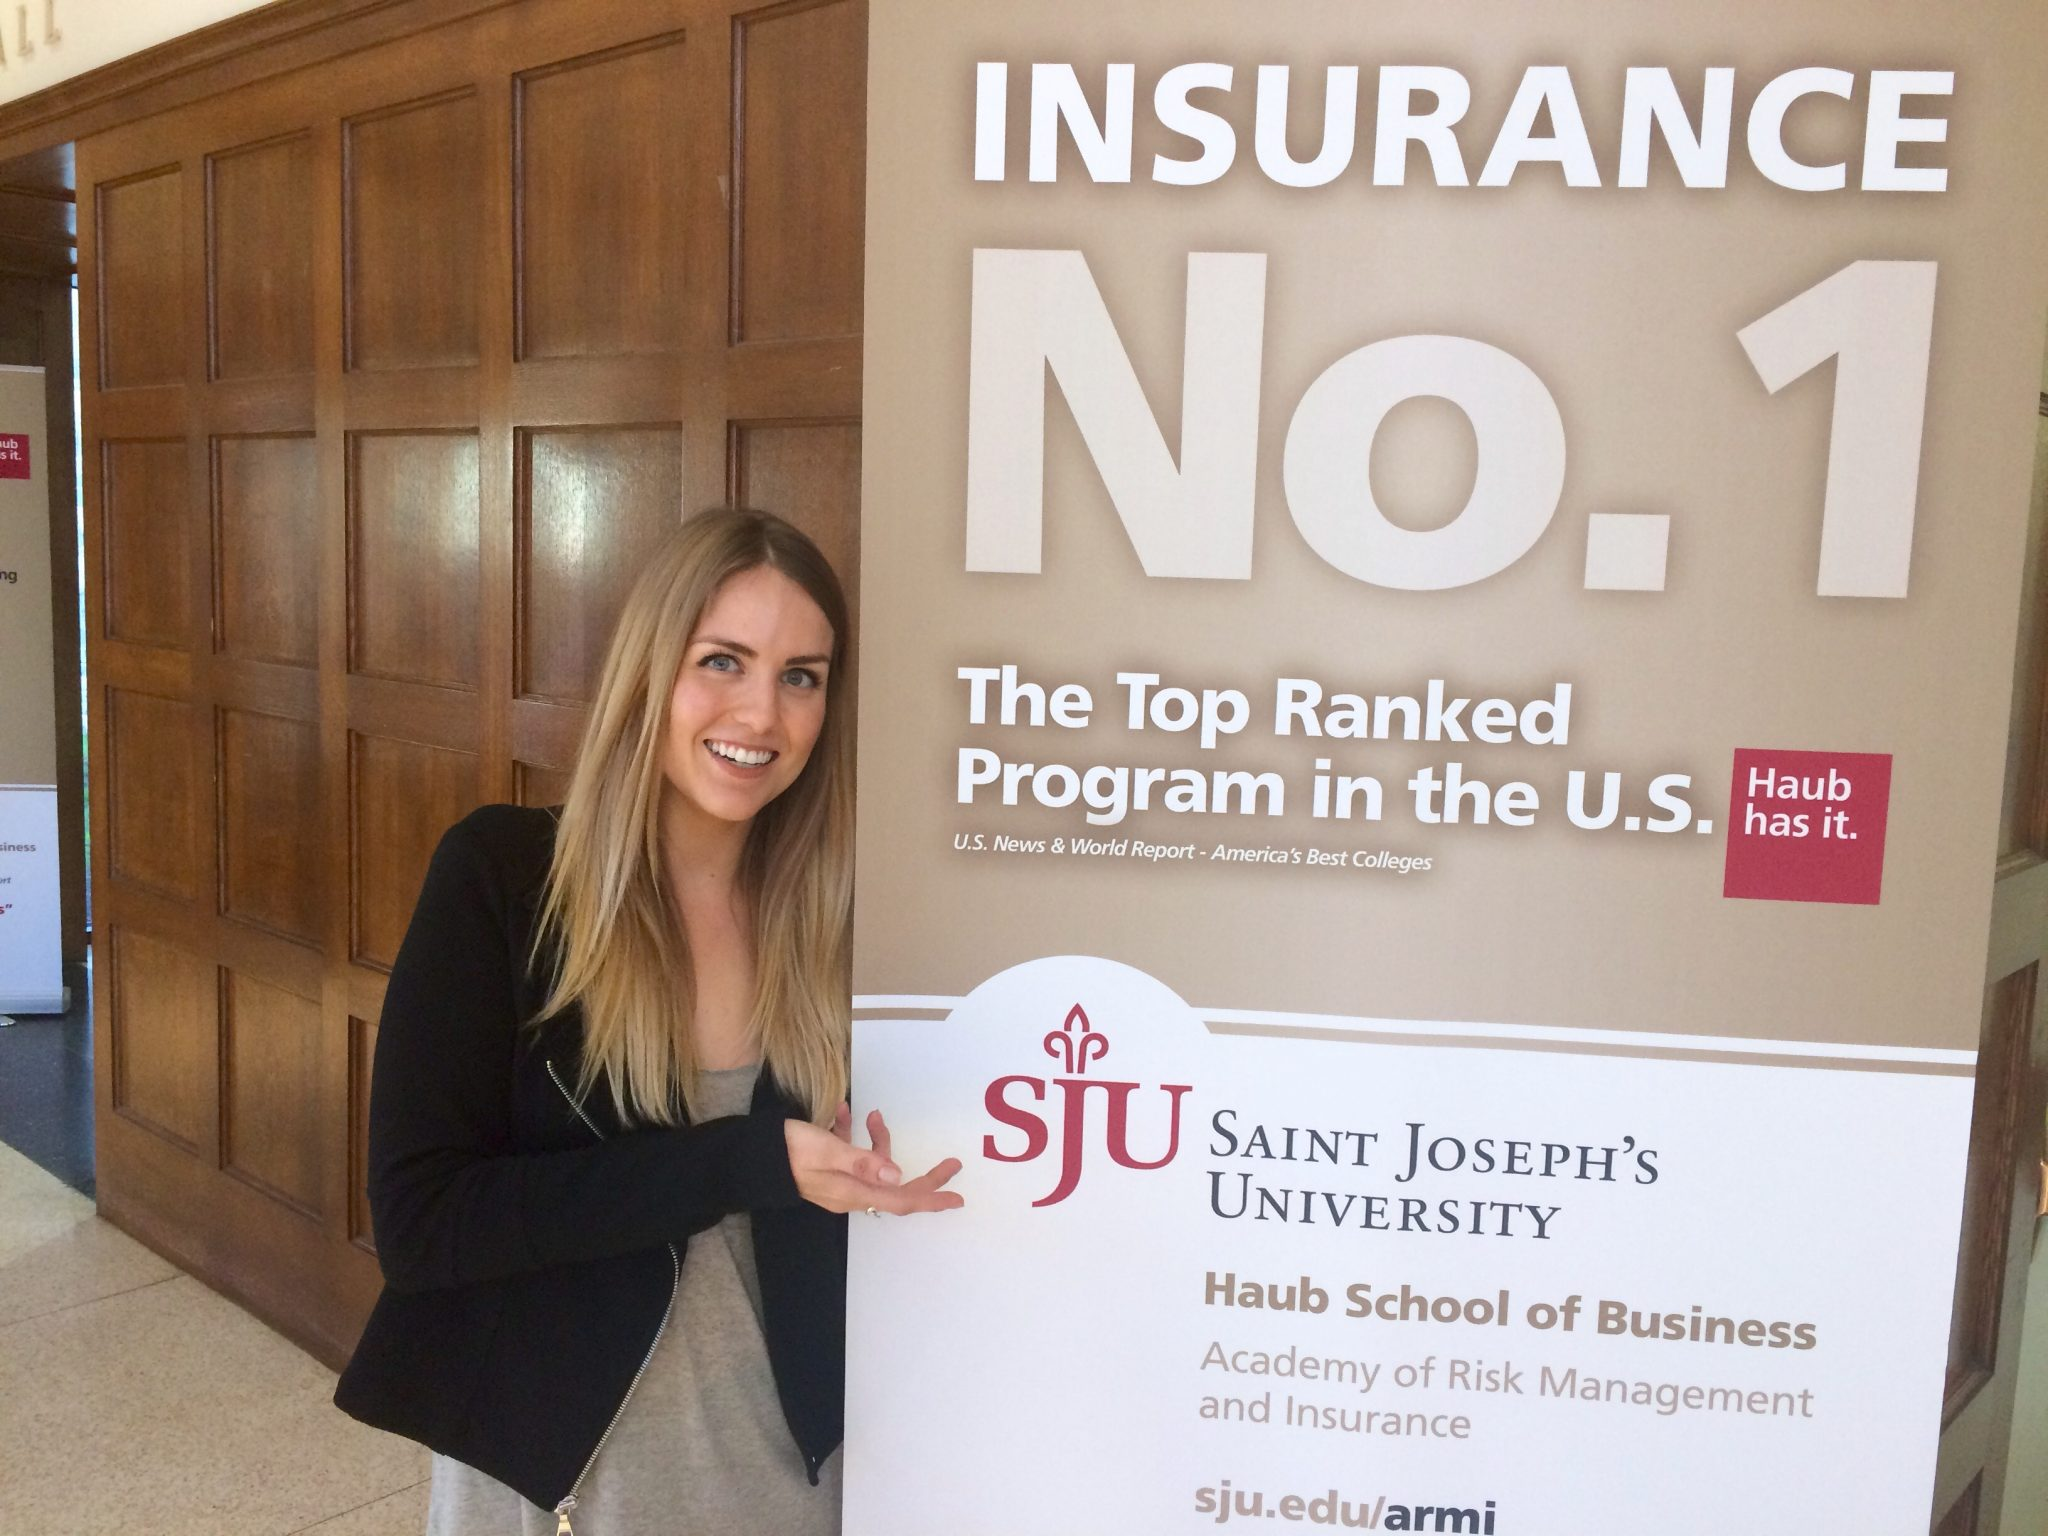 """Katie Boutin is pointing to a sign reading, """"Insurance No.1: The Top Ranked Program in the U.S.: Saint Joseph's University Haub School of Business."""""""